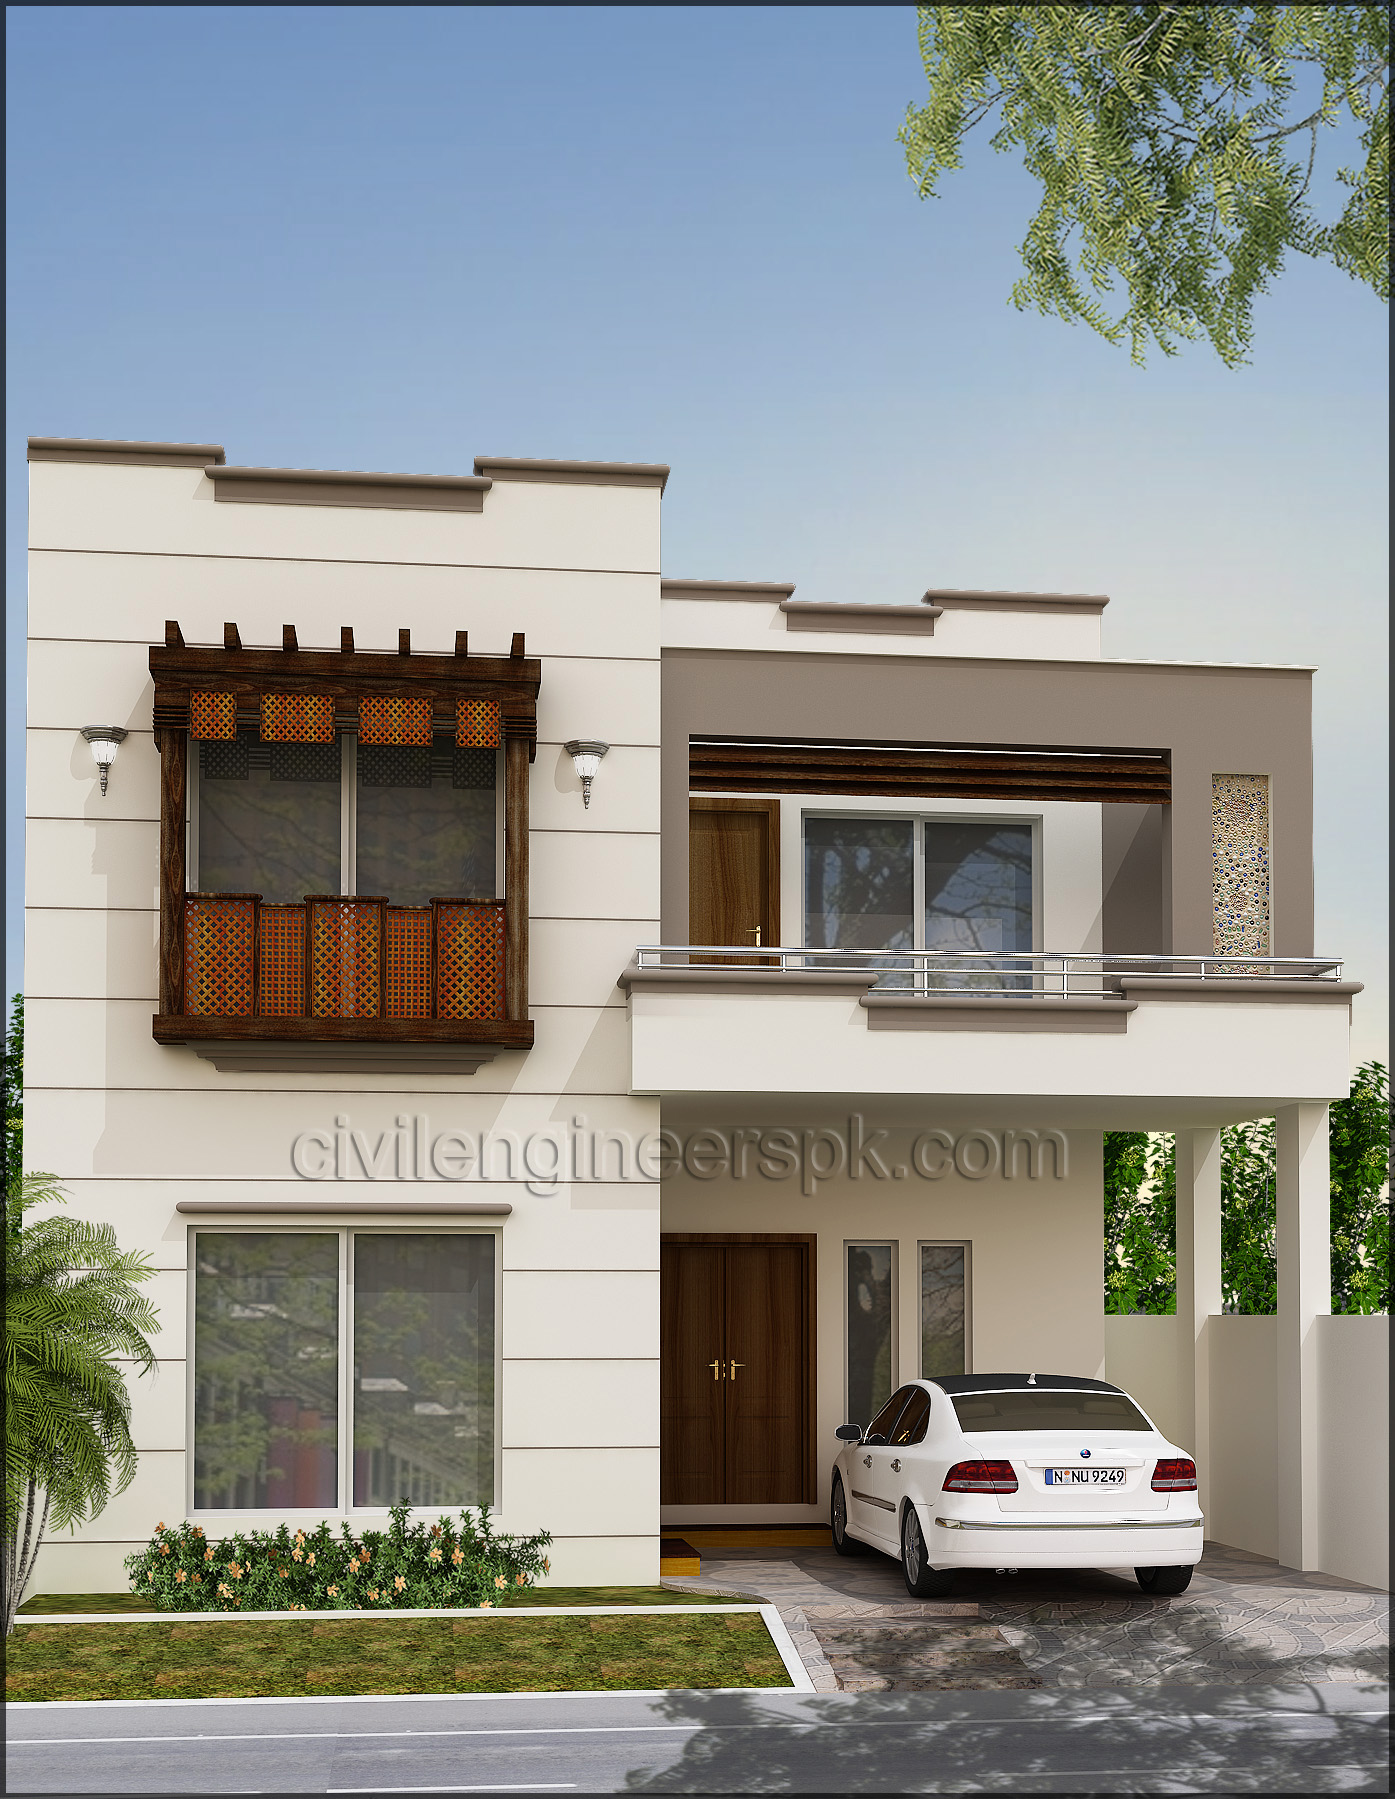 Small House Front Elevations : Front views civil engineers pk